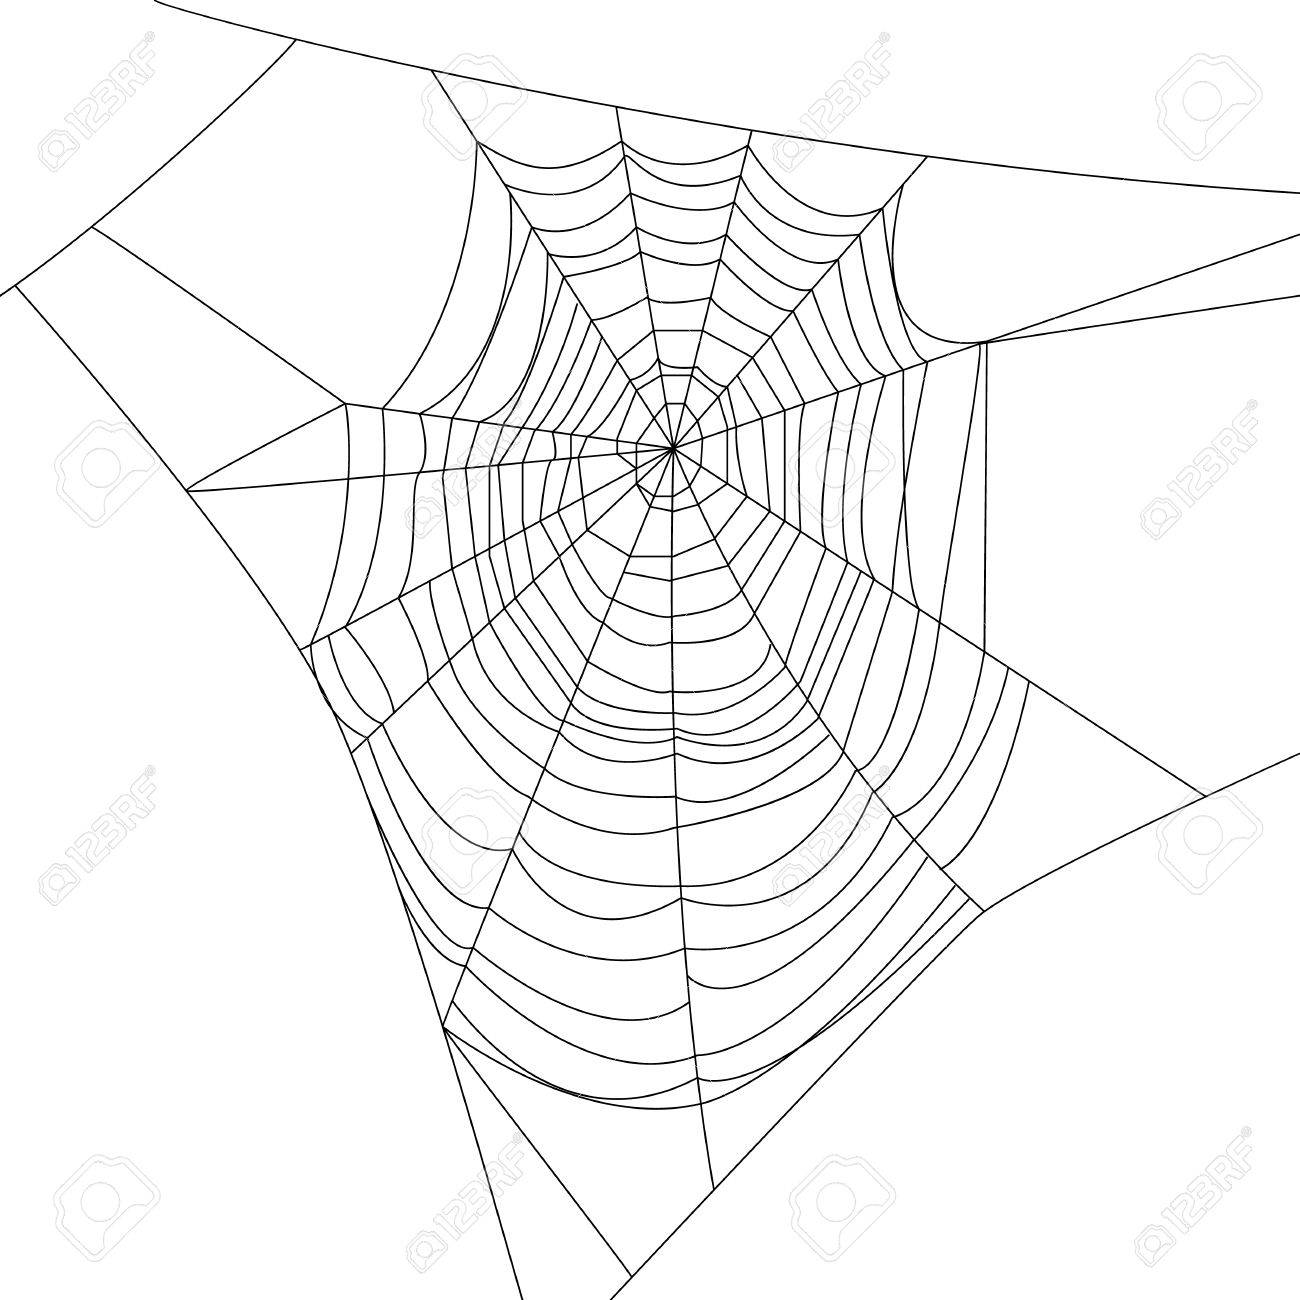 Spider web isolated on white for Halloween design - 44147398